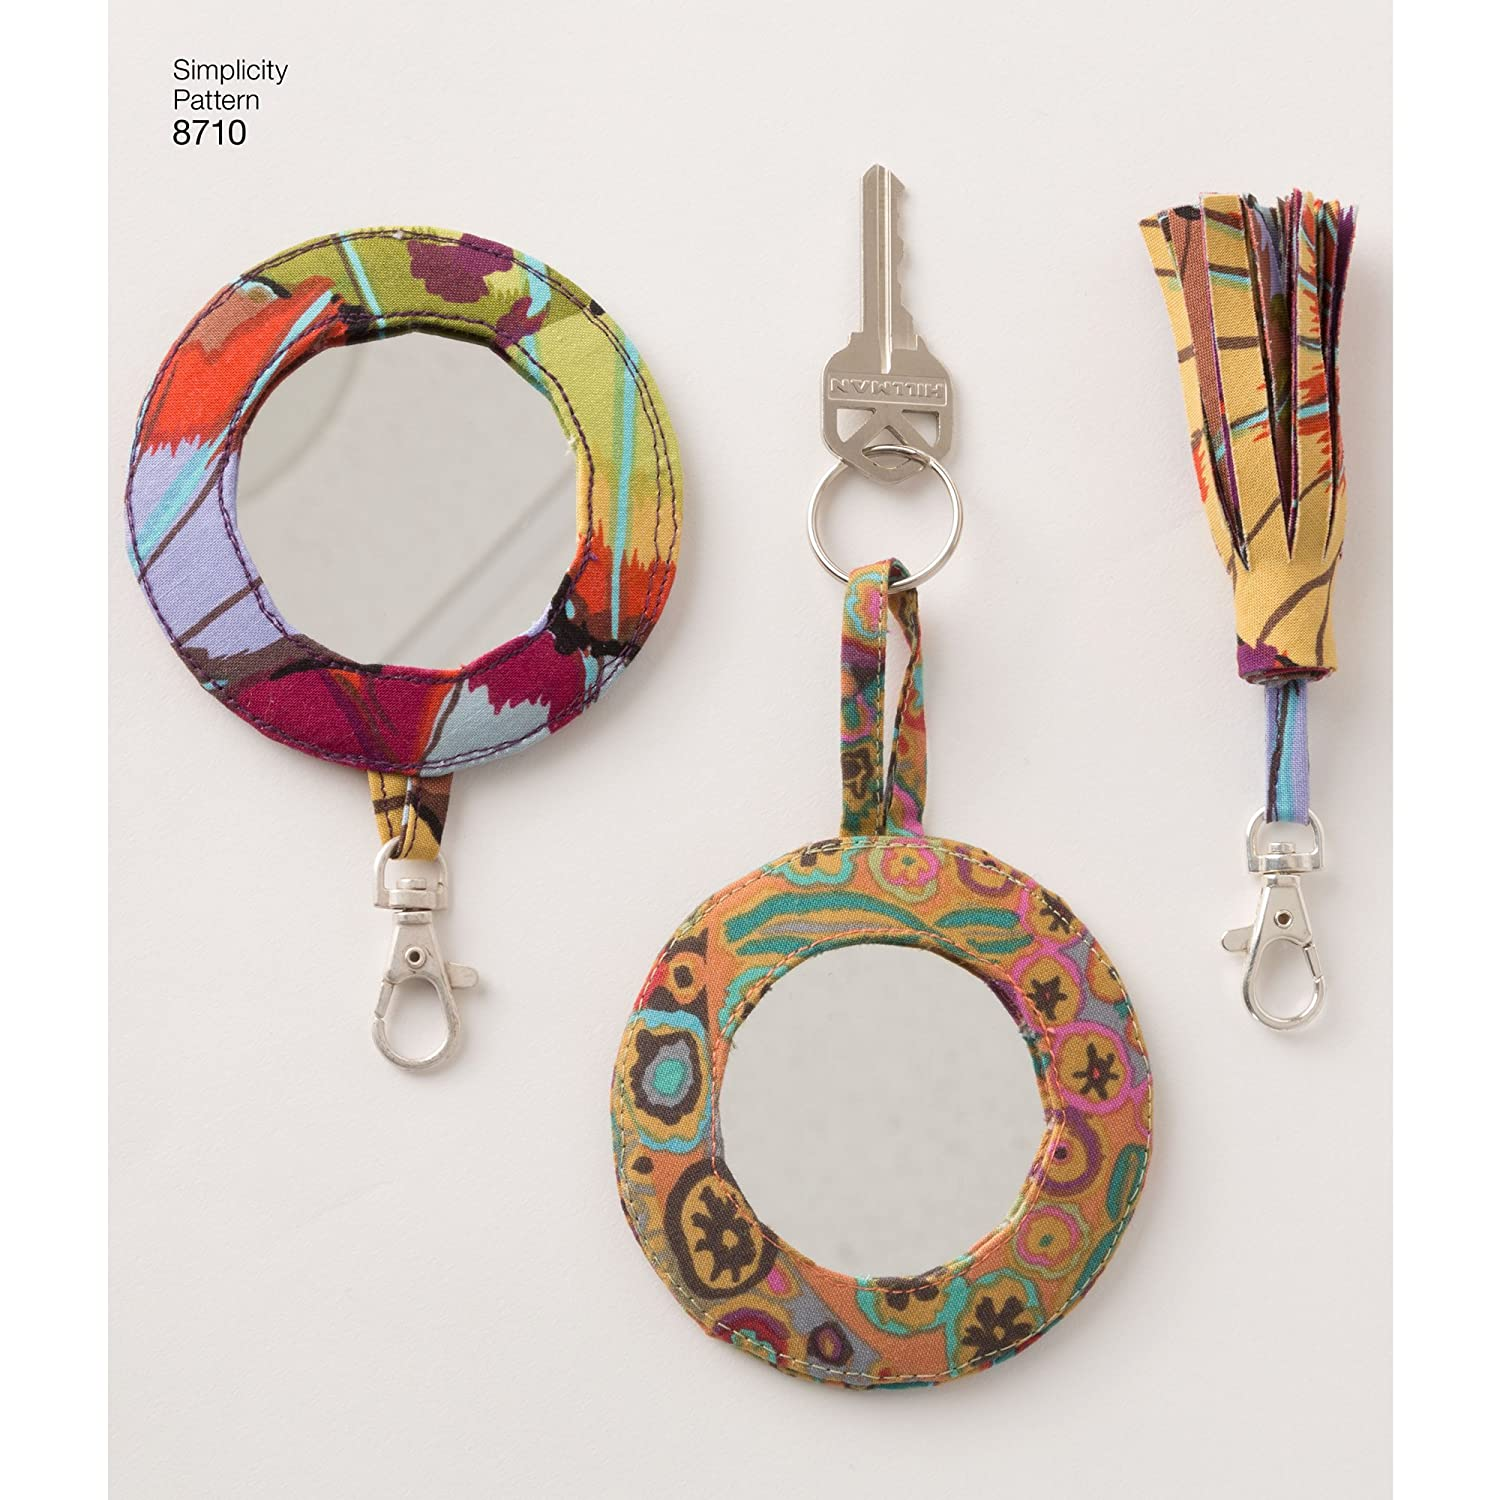 Simplicity Creative Patterns US8710OS Ring and Tassel Accessories